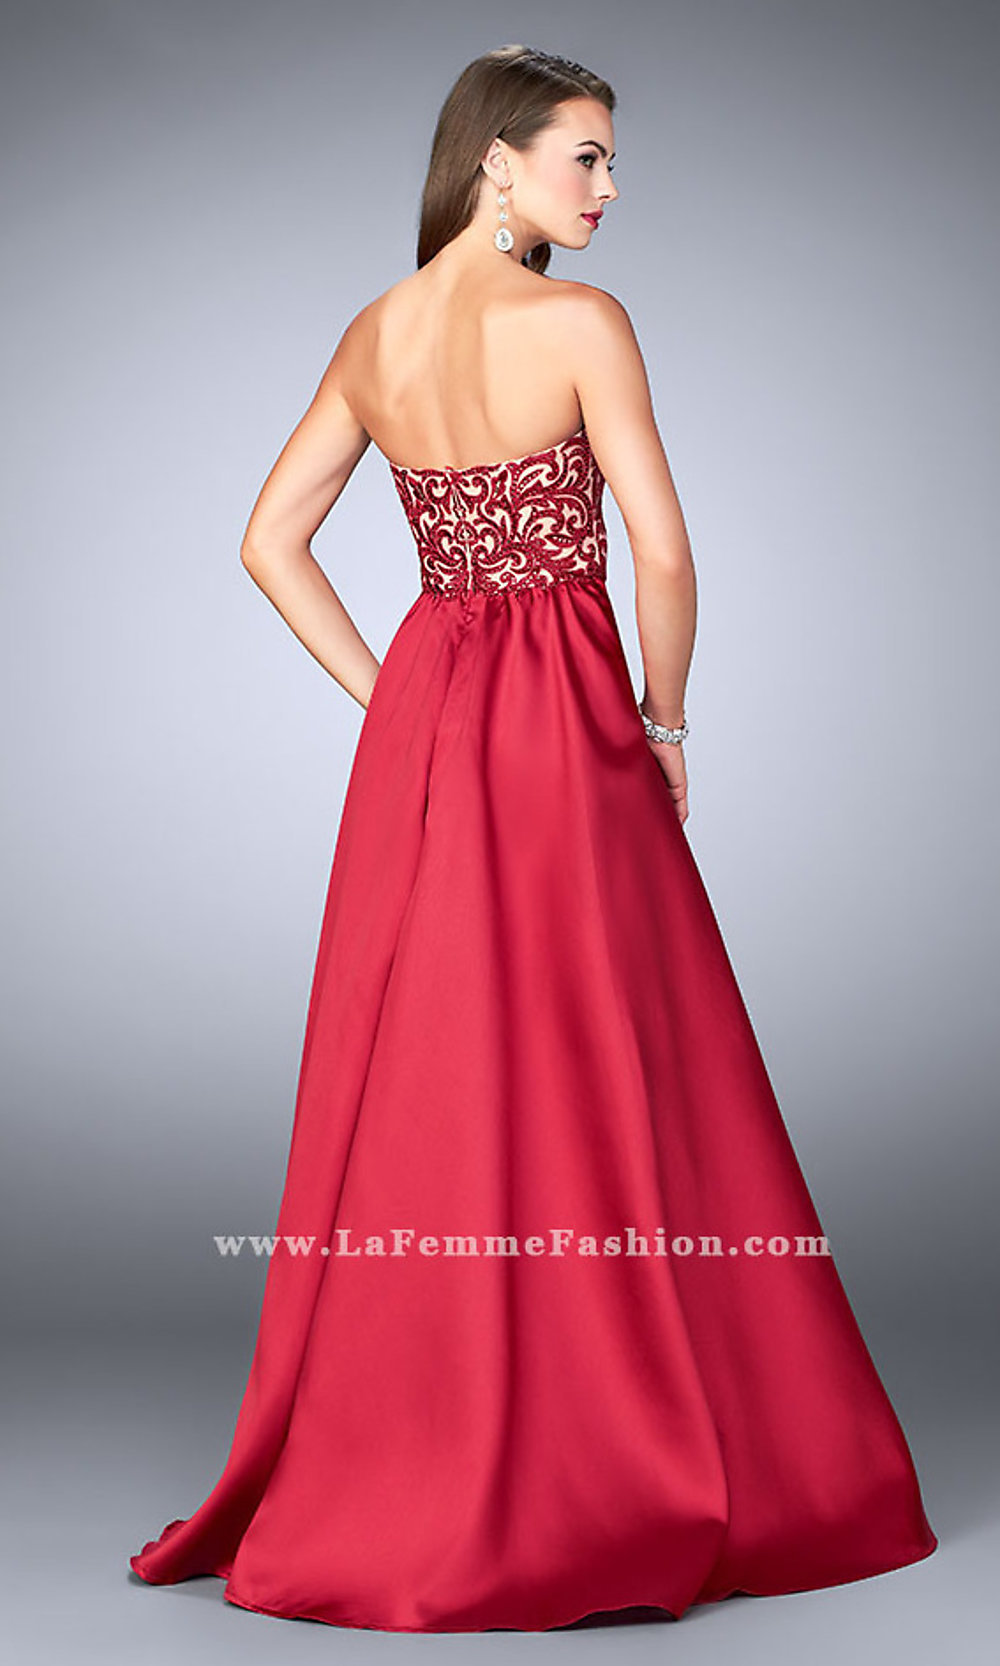 7987437fef97 Long Mikado Embroidered Prom Dress with Cape Skirt